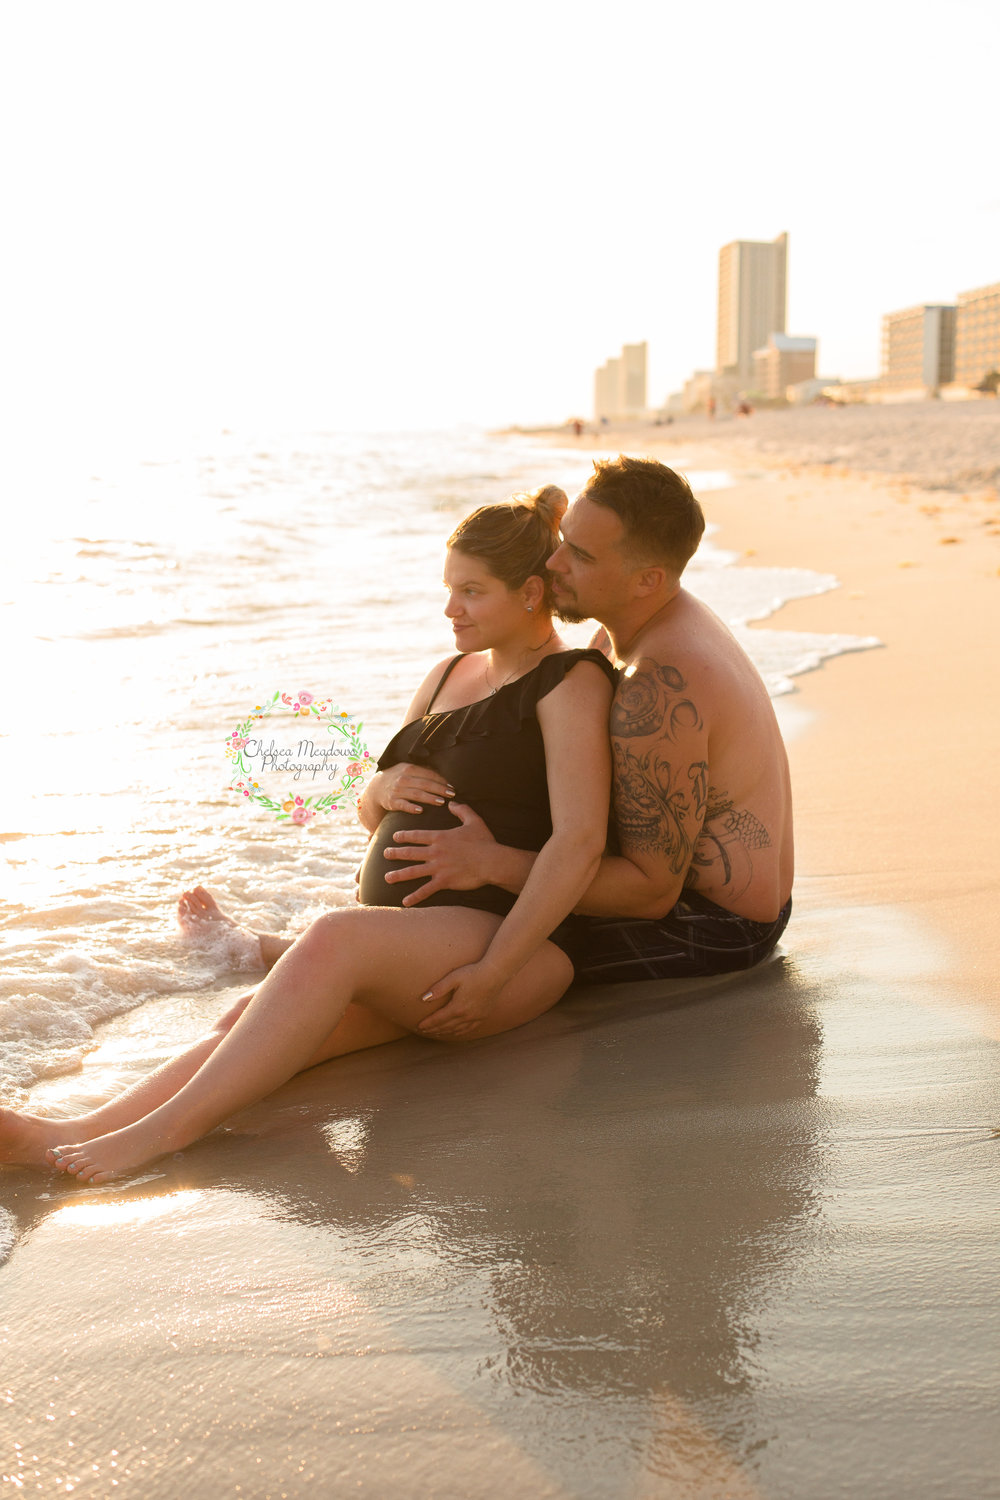 Nicole & Drew Beach Maternity - Nashville Maternity Photography - Chelsea Meadows Photography (67).jpg